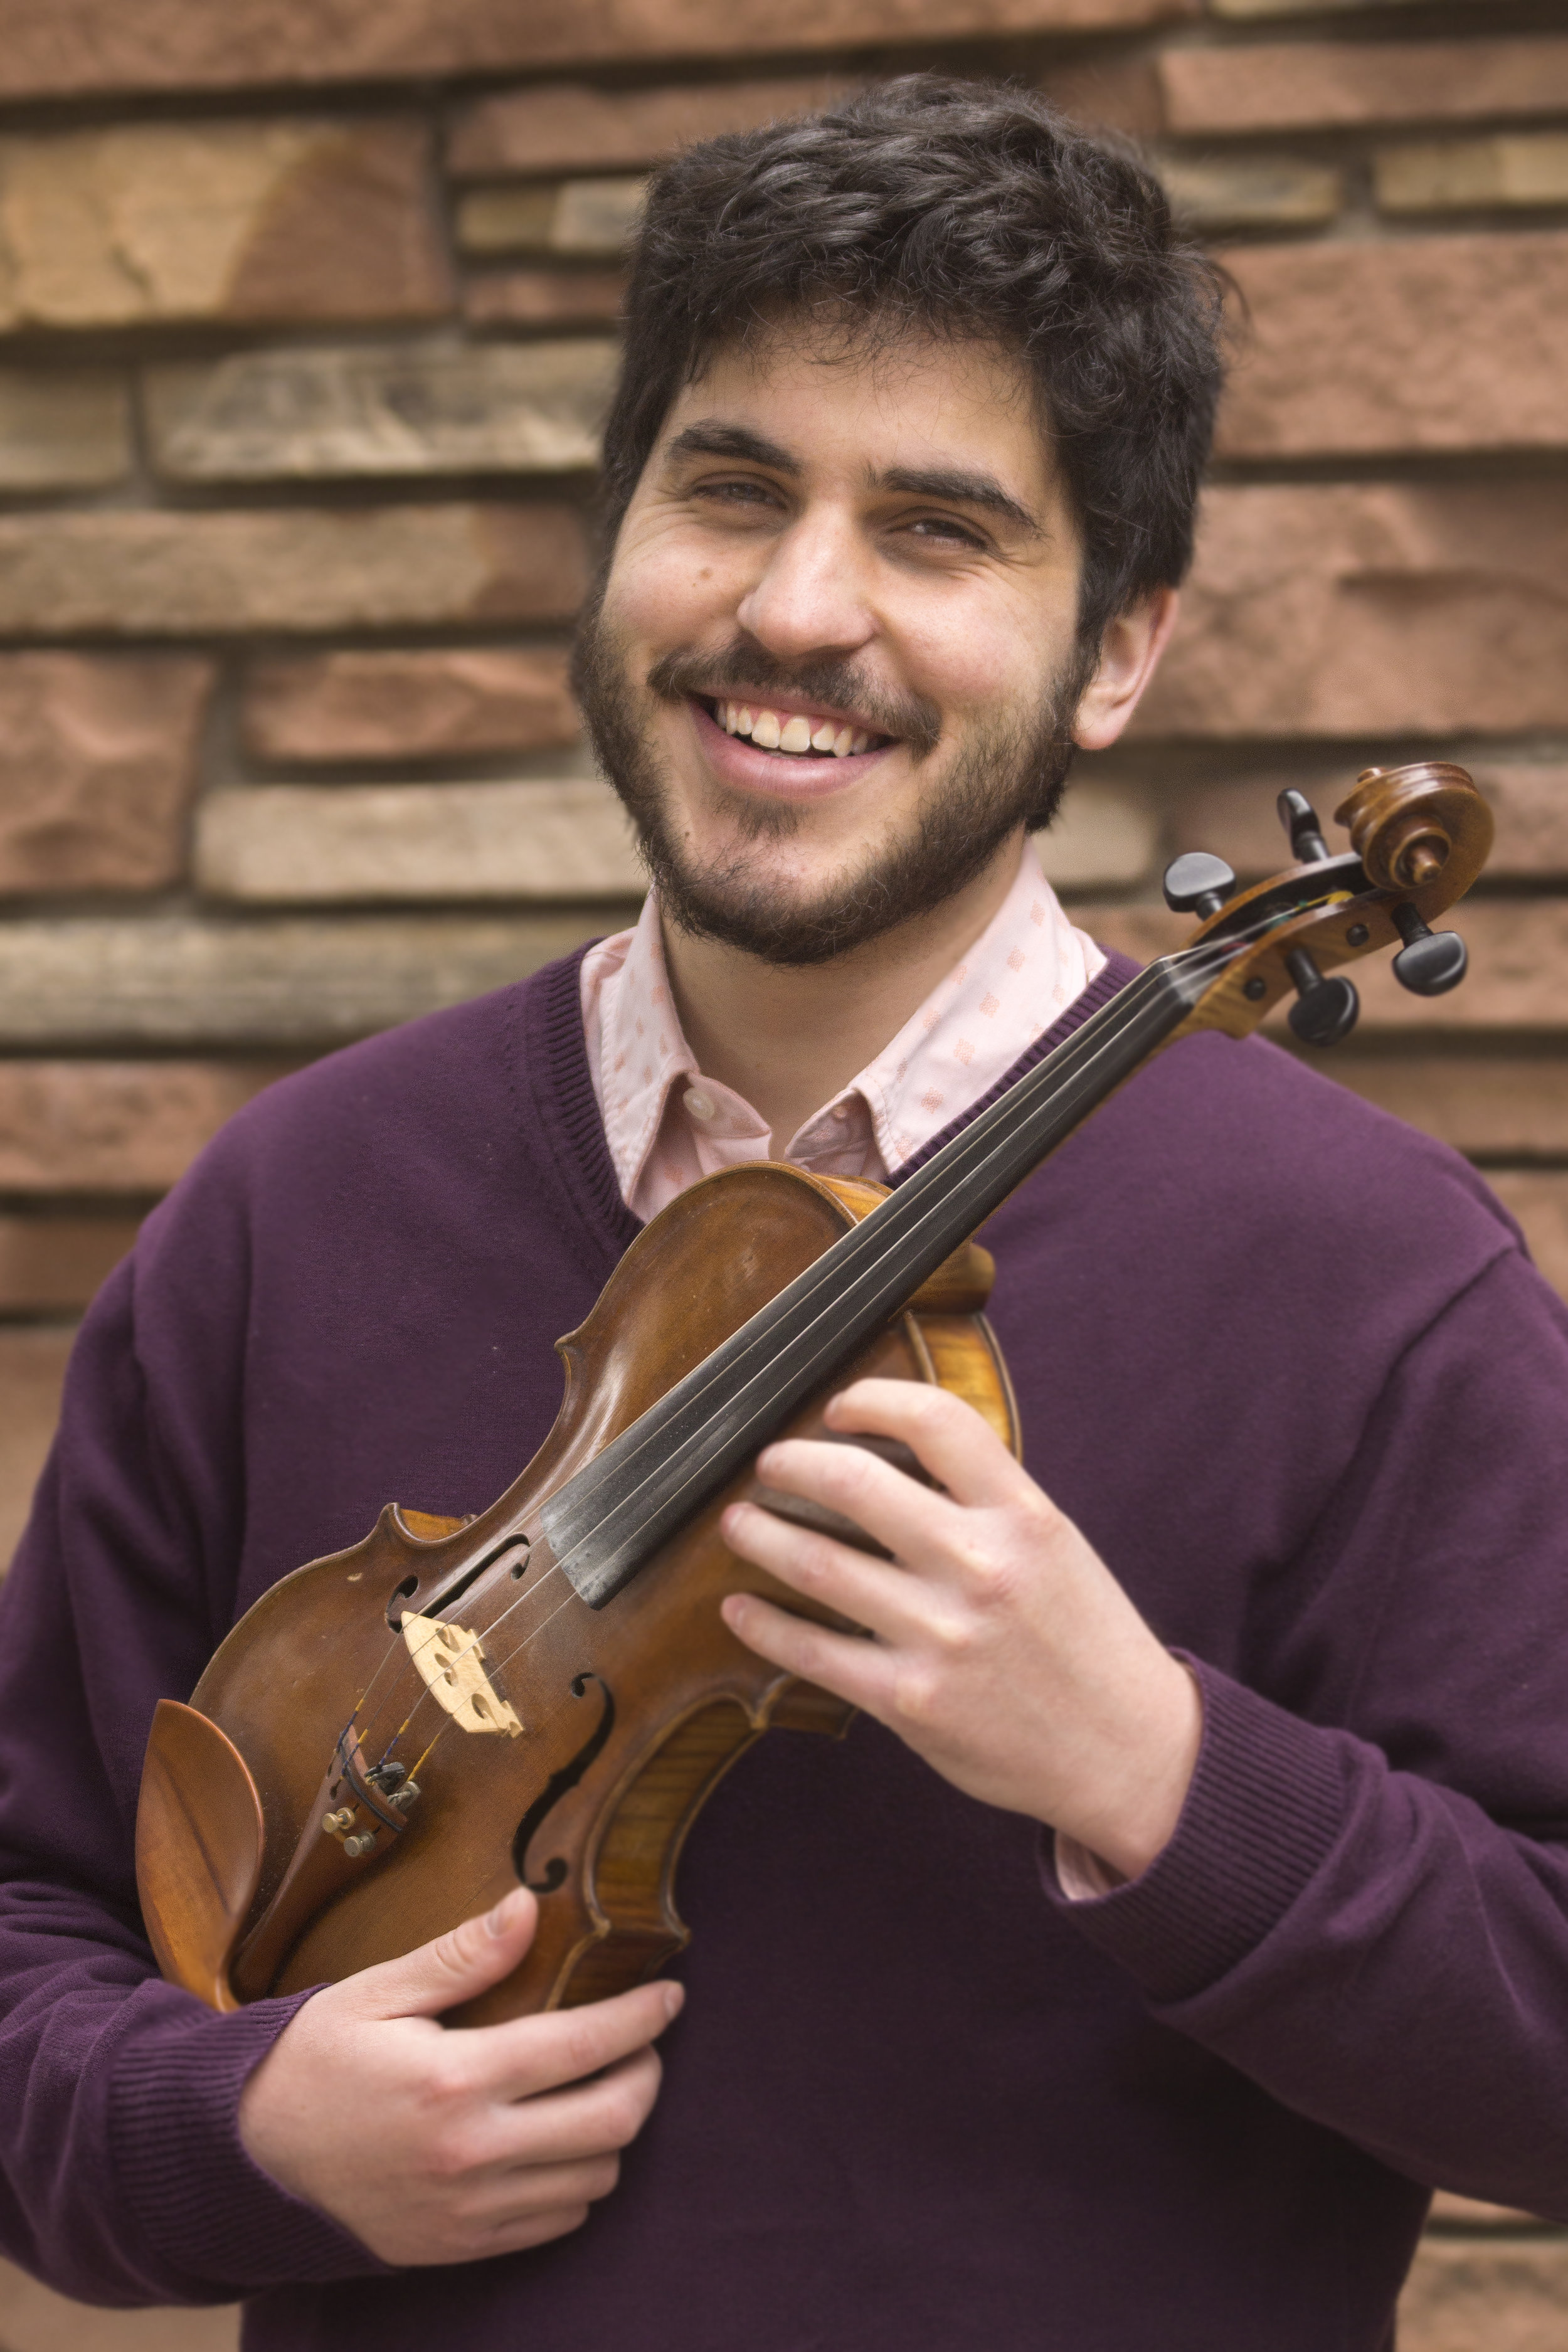 "Eitan Kantor - Eitan Bernard Kantor is a singer, songleader and violinist based in Boulder, Colorado. He sings and fiddles with the klezmer fusion band, Hadgaba, with whom he recently recorded the album, ""E.P. (Ershter Prubirn)."" Eitan serves as a High Holidays cantorial soloist at Penn Hillel and is the music director of the davening band at Congregation Bonai Shalom in Boulder. Through the creation of both religious and secular Jewish music, Eitan hopes to inspire social action rooted in Jewish values."